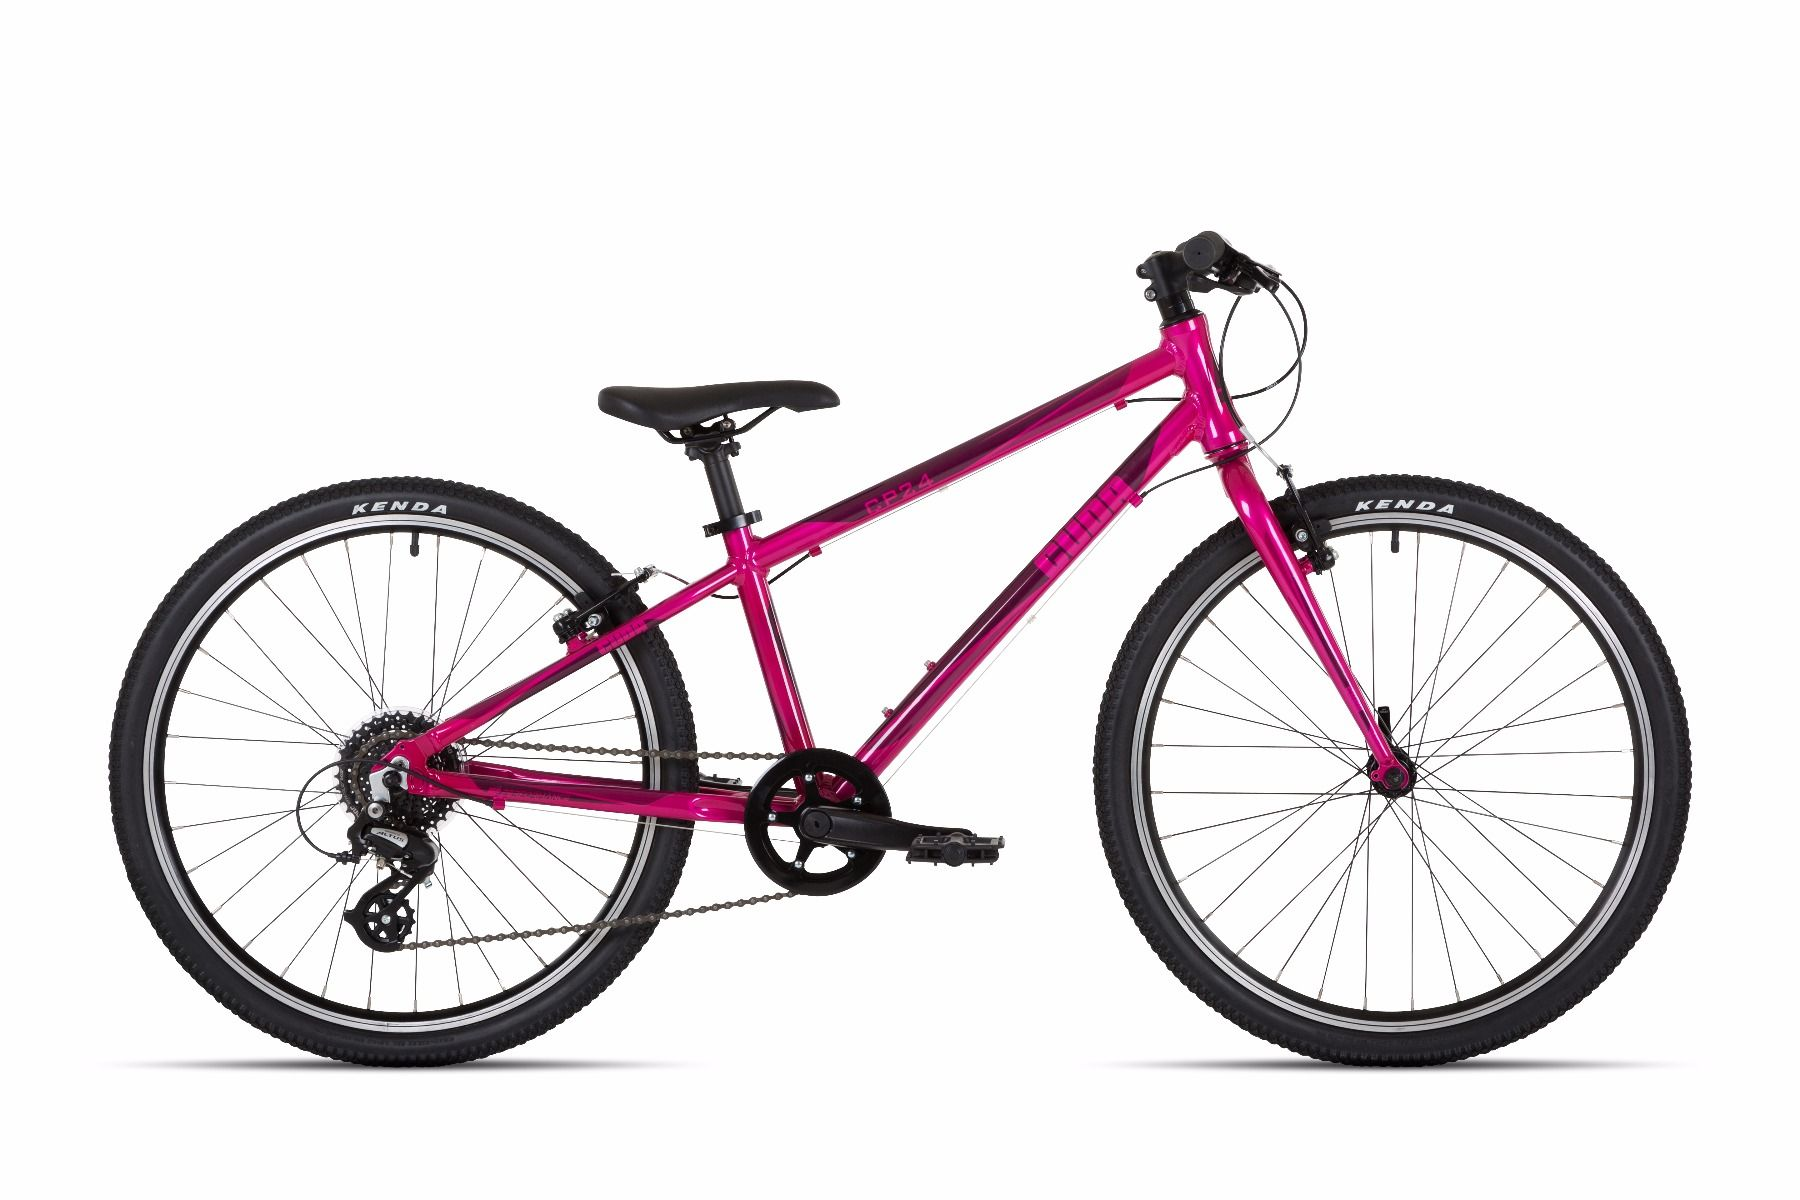 2019 Cuda CP24 24 Inch Wheel Junior Bike in Purple £330.00